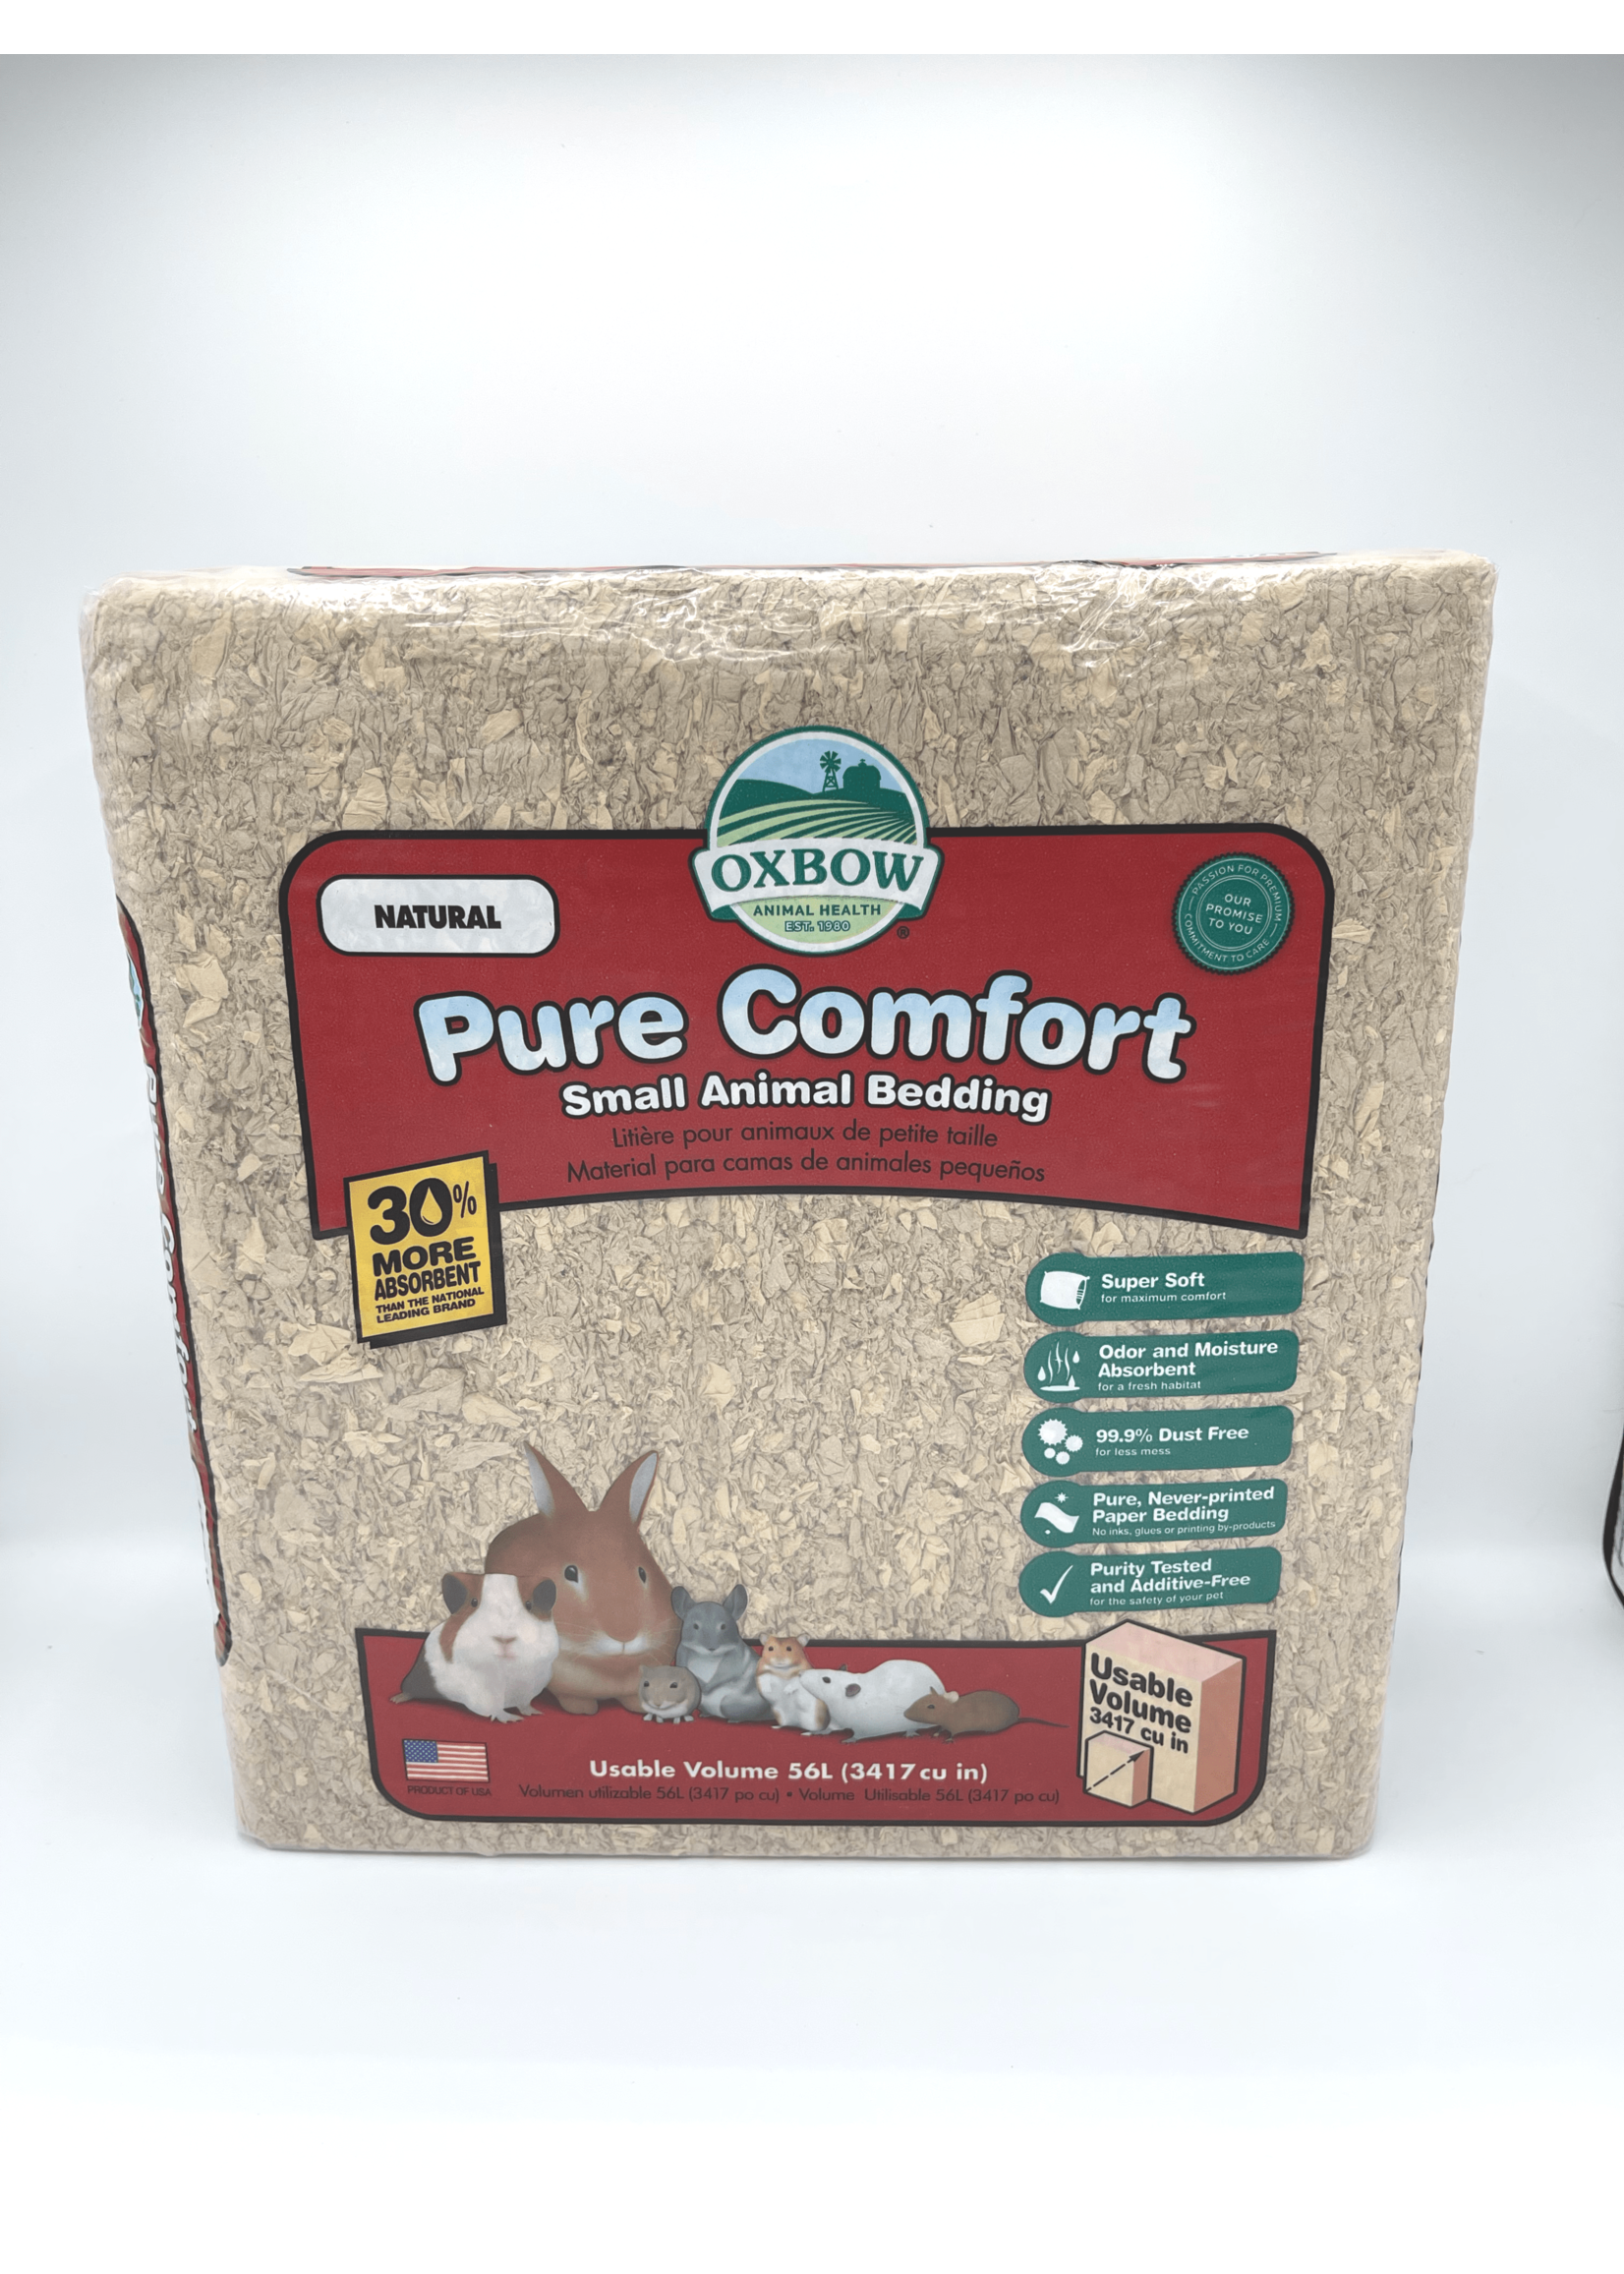 Oxbow Oxbow Pure Comfort Small Animal Bedding, 56L